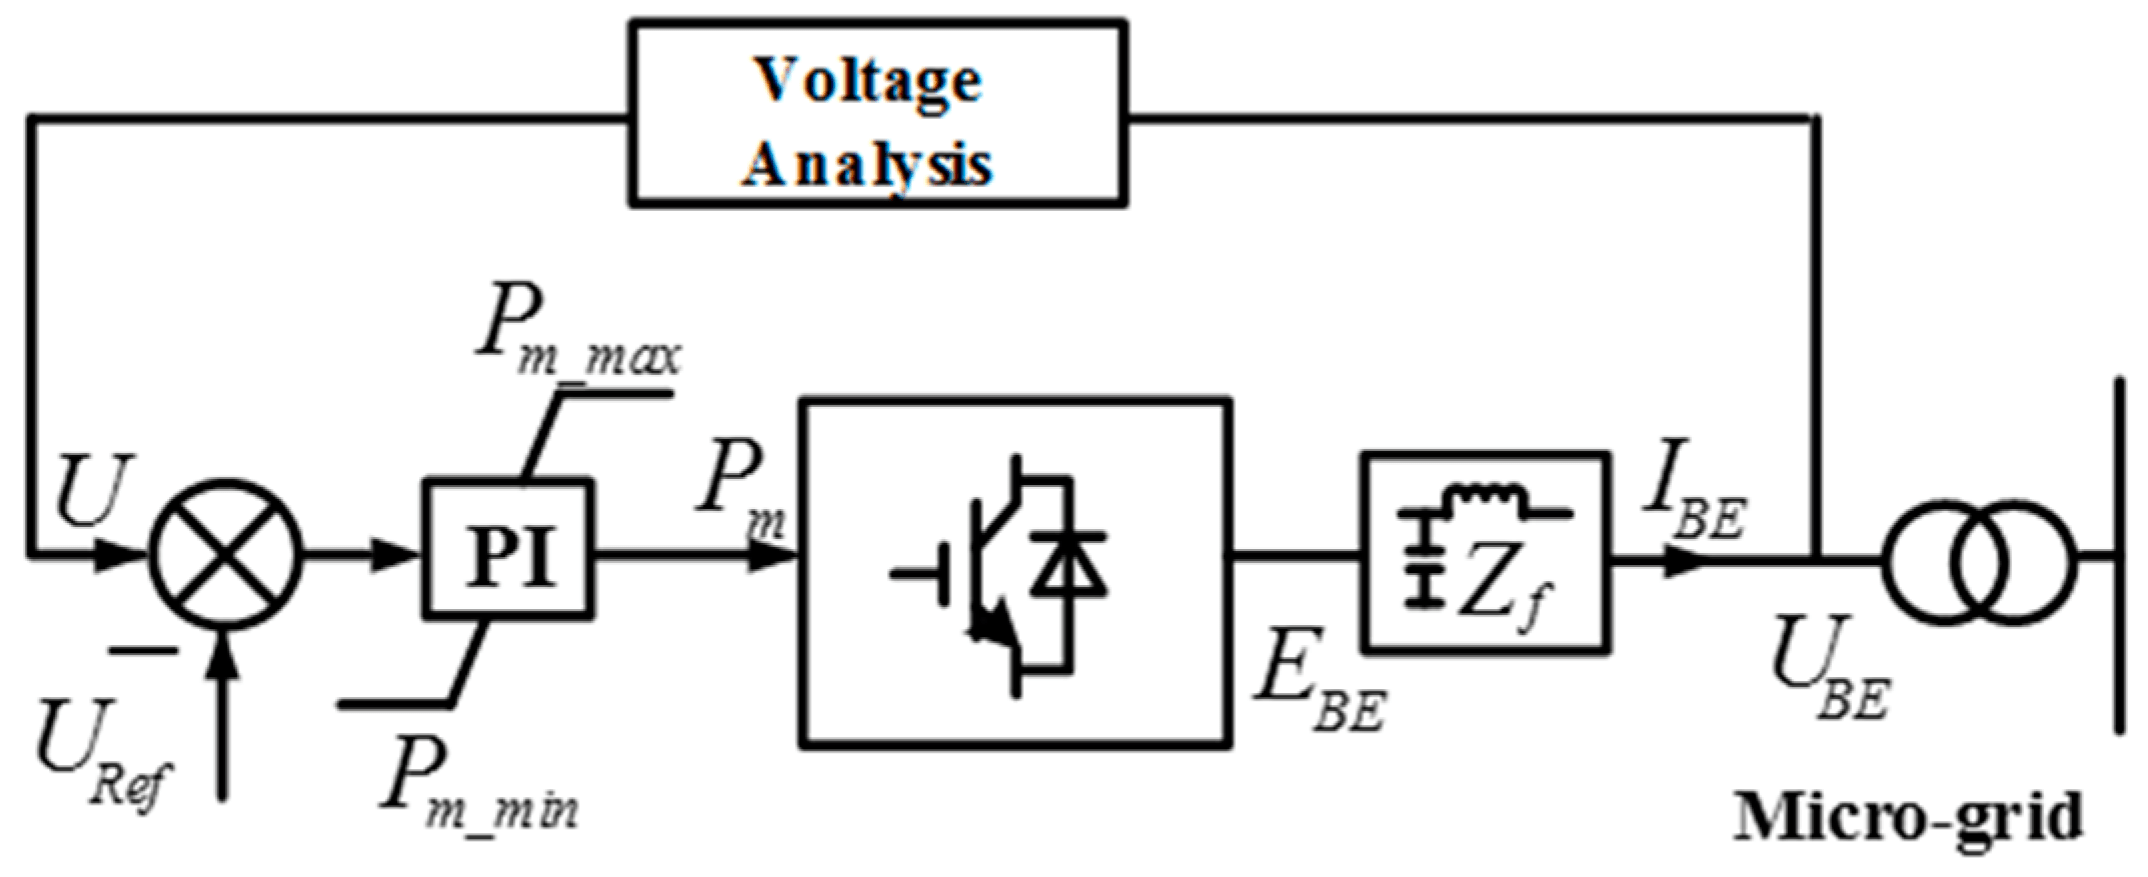 V F Control Block Diagram